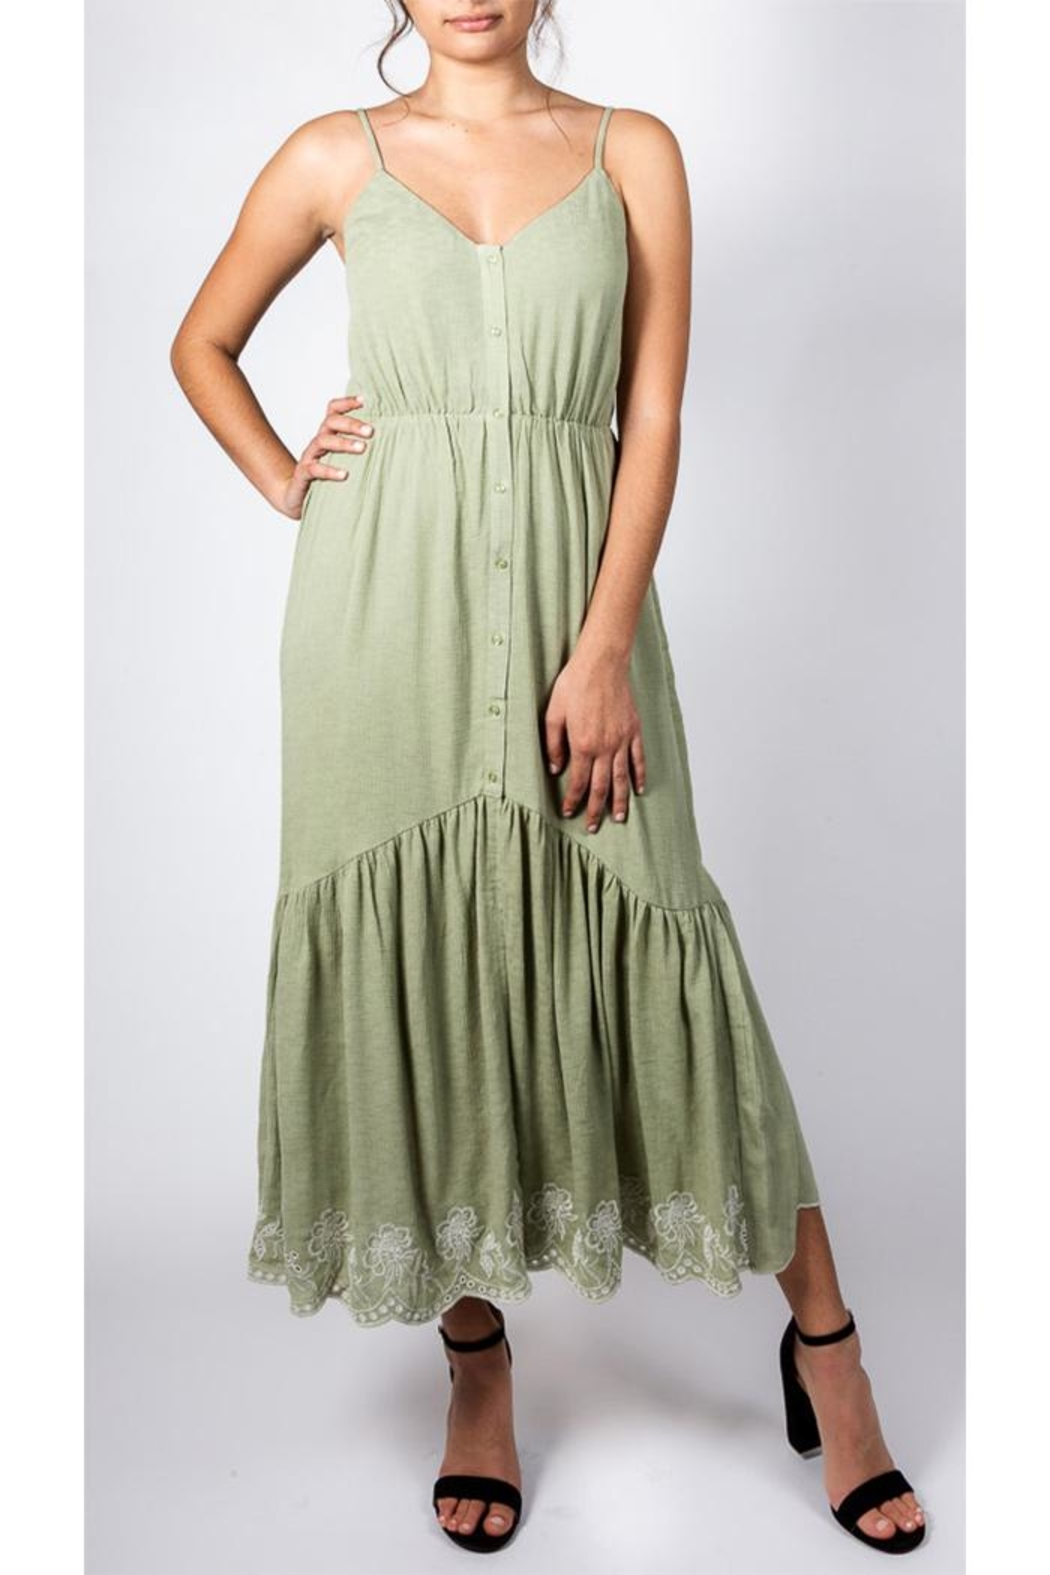 All In Favor Sage Emnbroidered Dress - Side Cropped Image